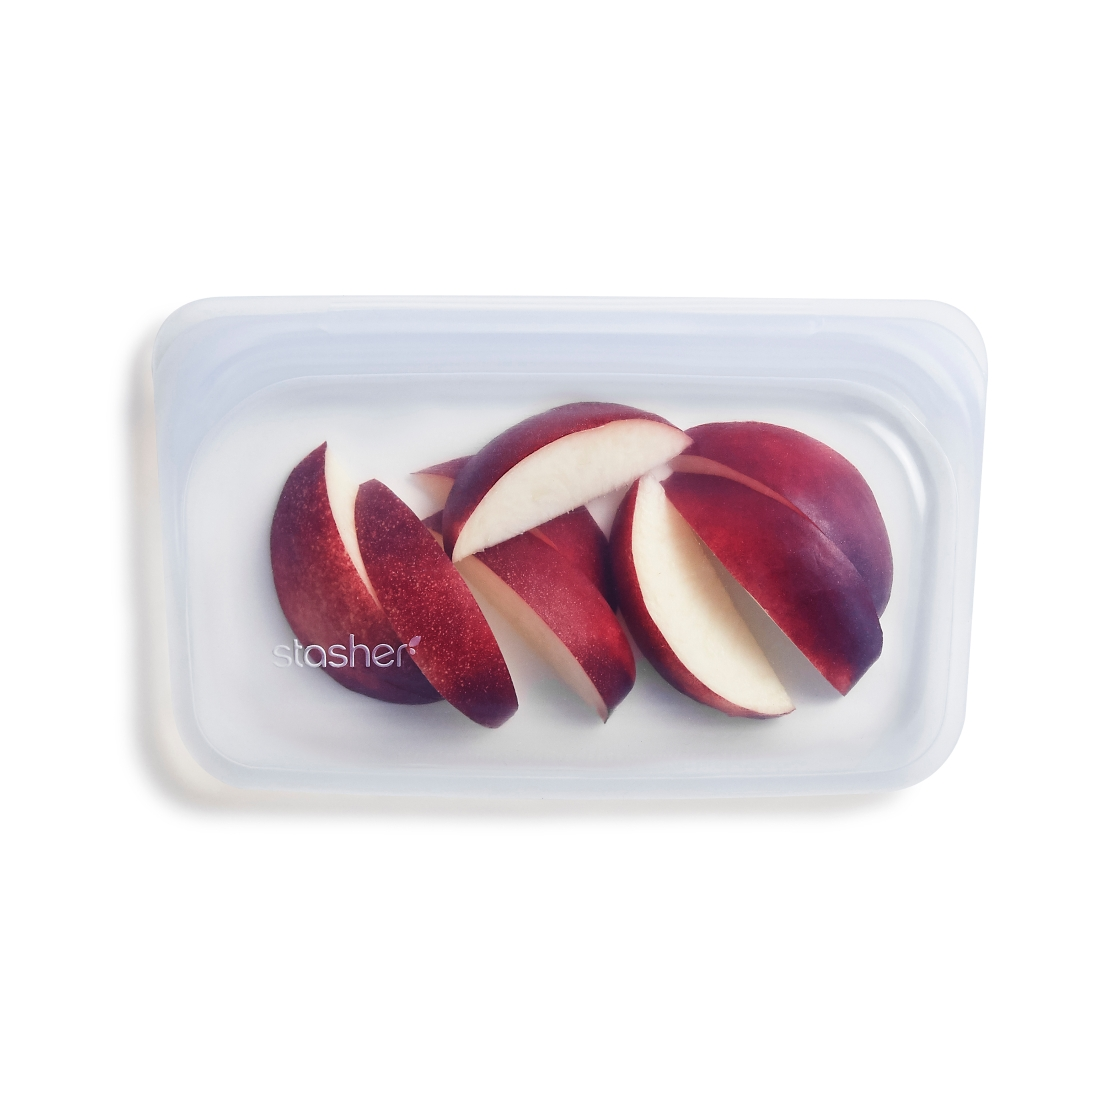 Reusable snack bag - Refuse Plastic Today